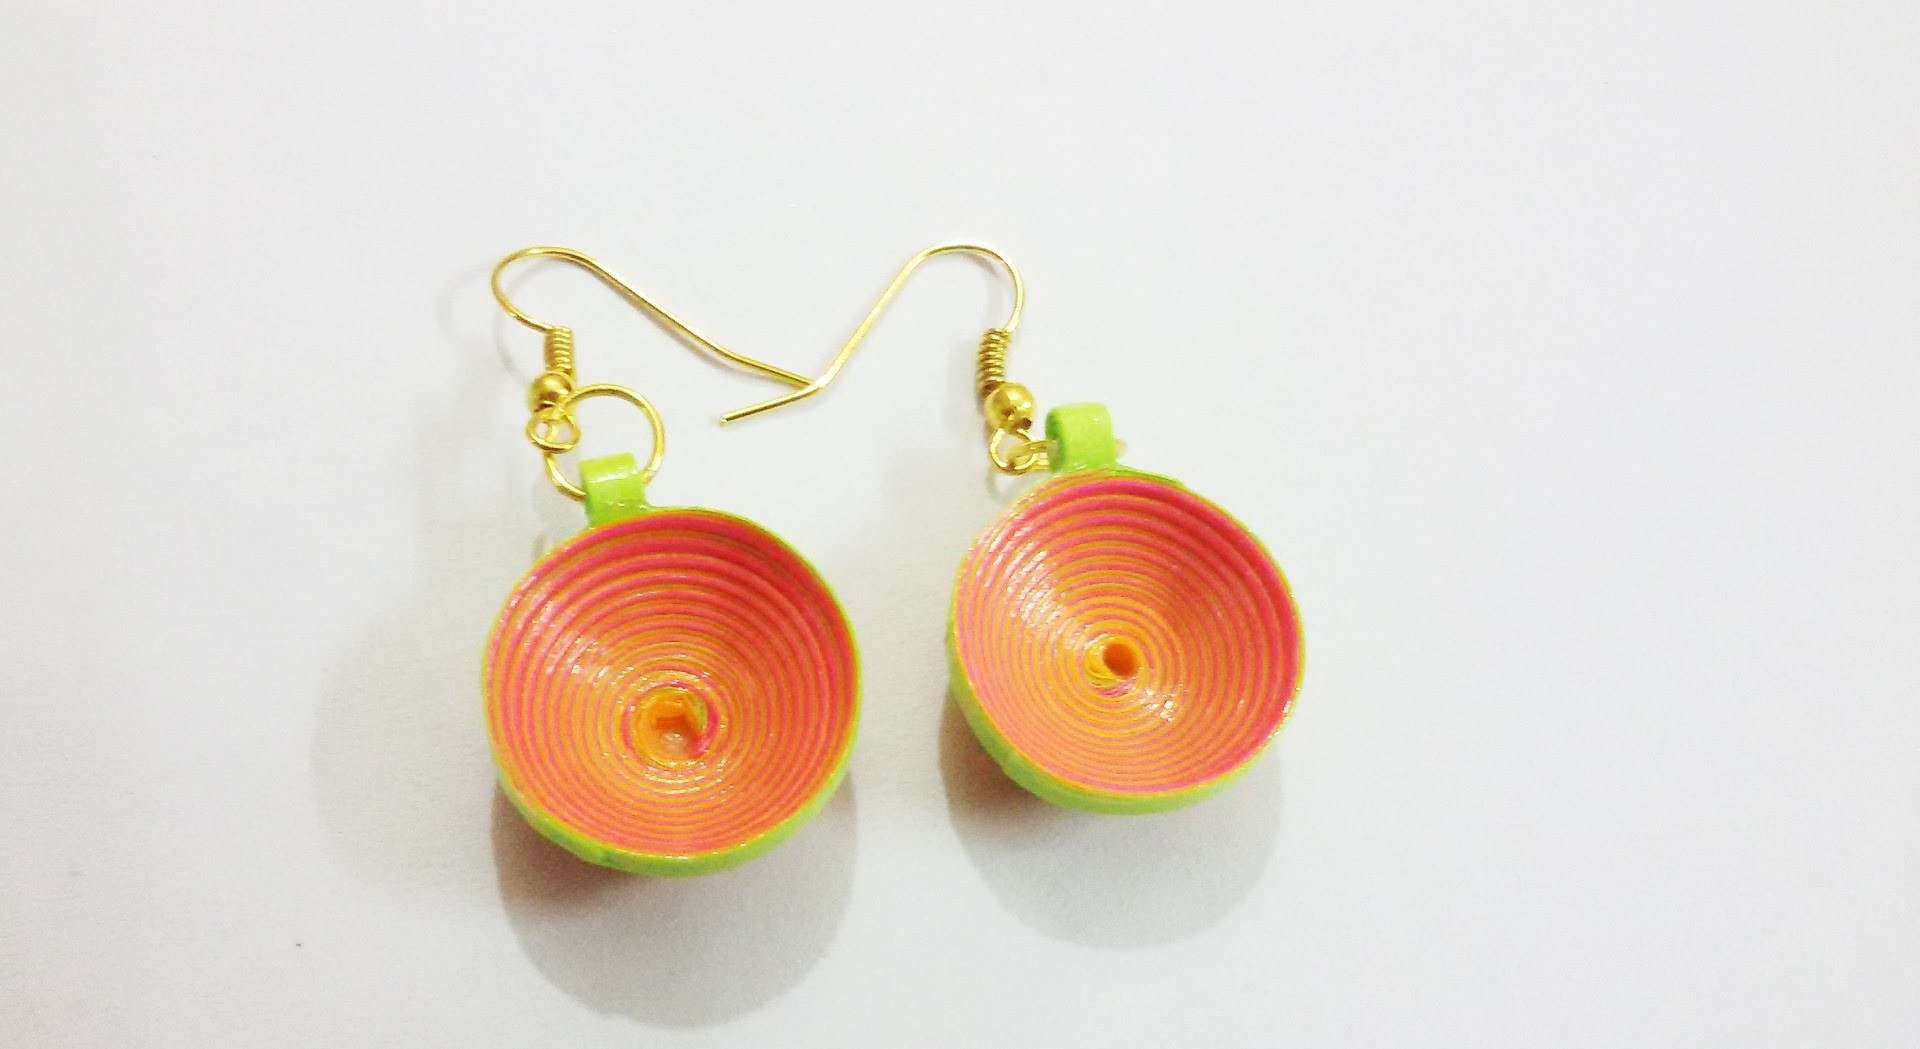 59. Neon Color 3D Quilling Earrings Tutorial